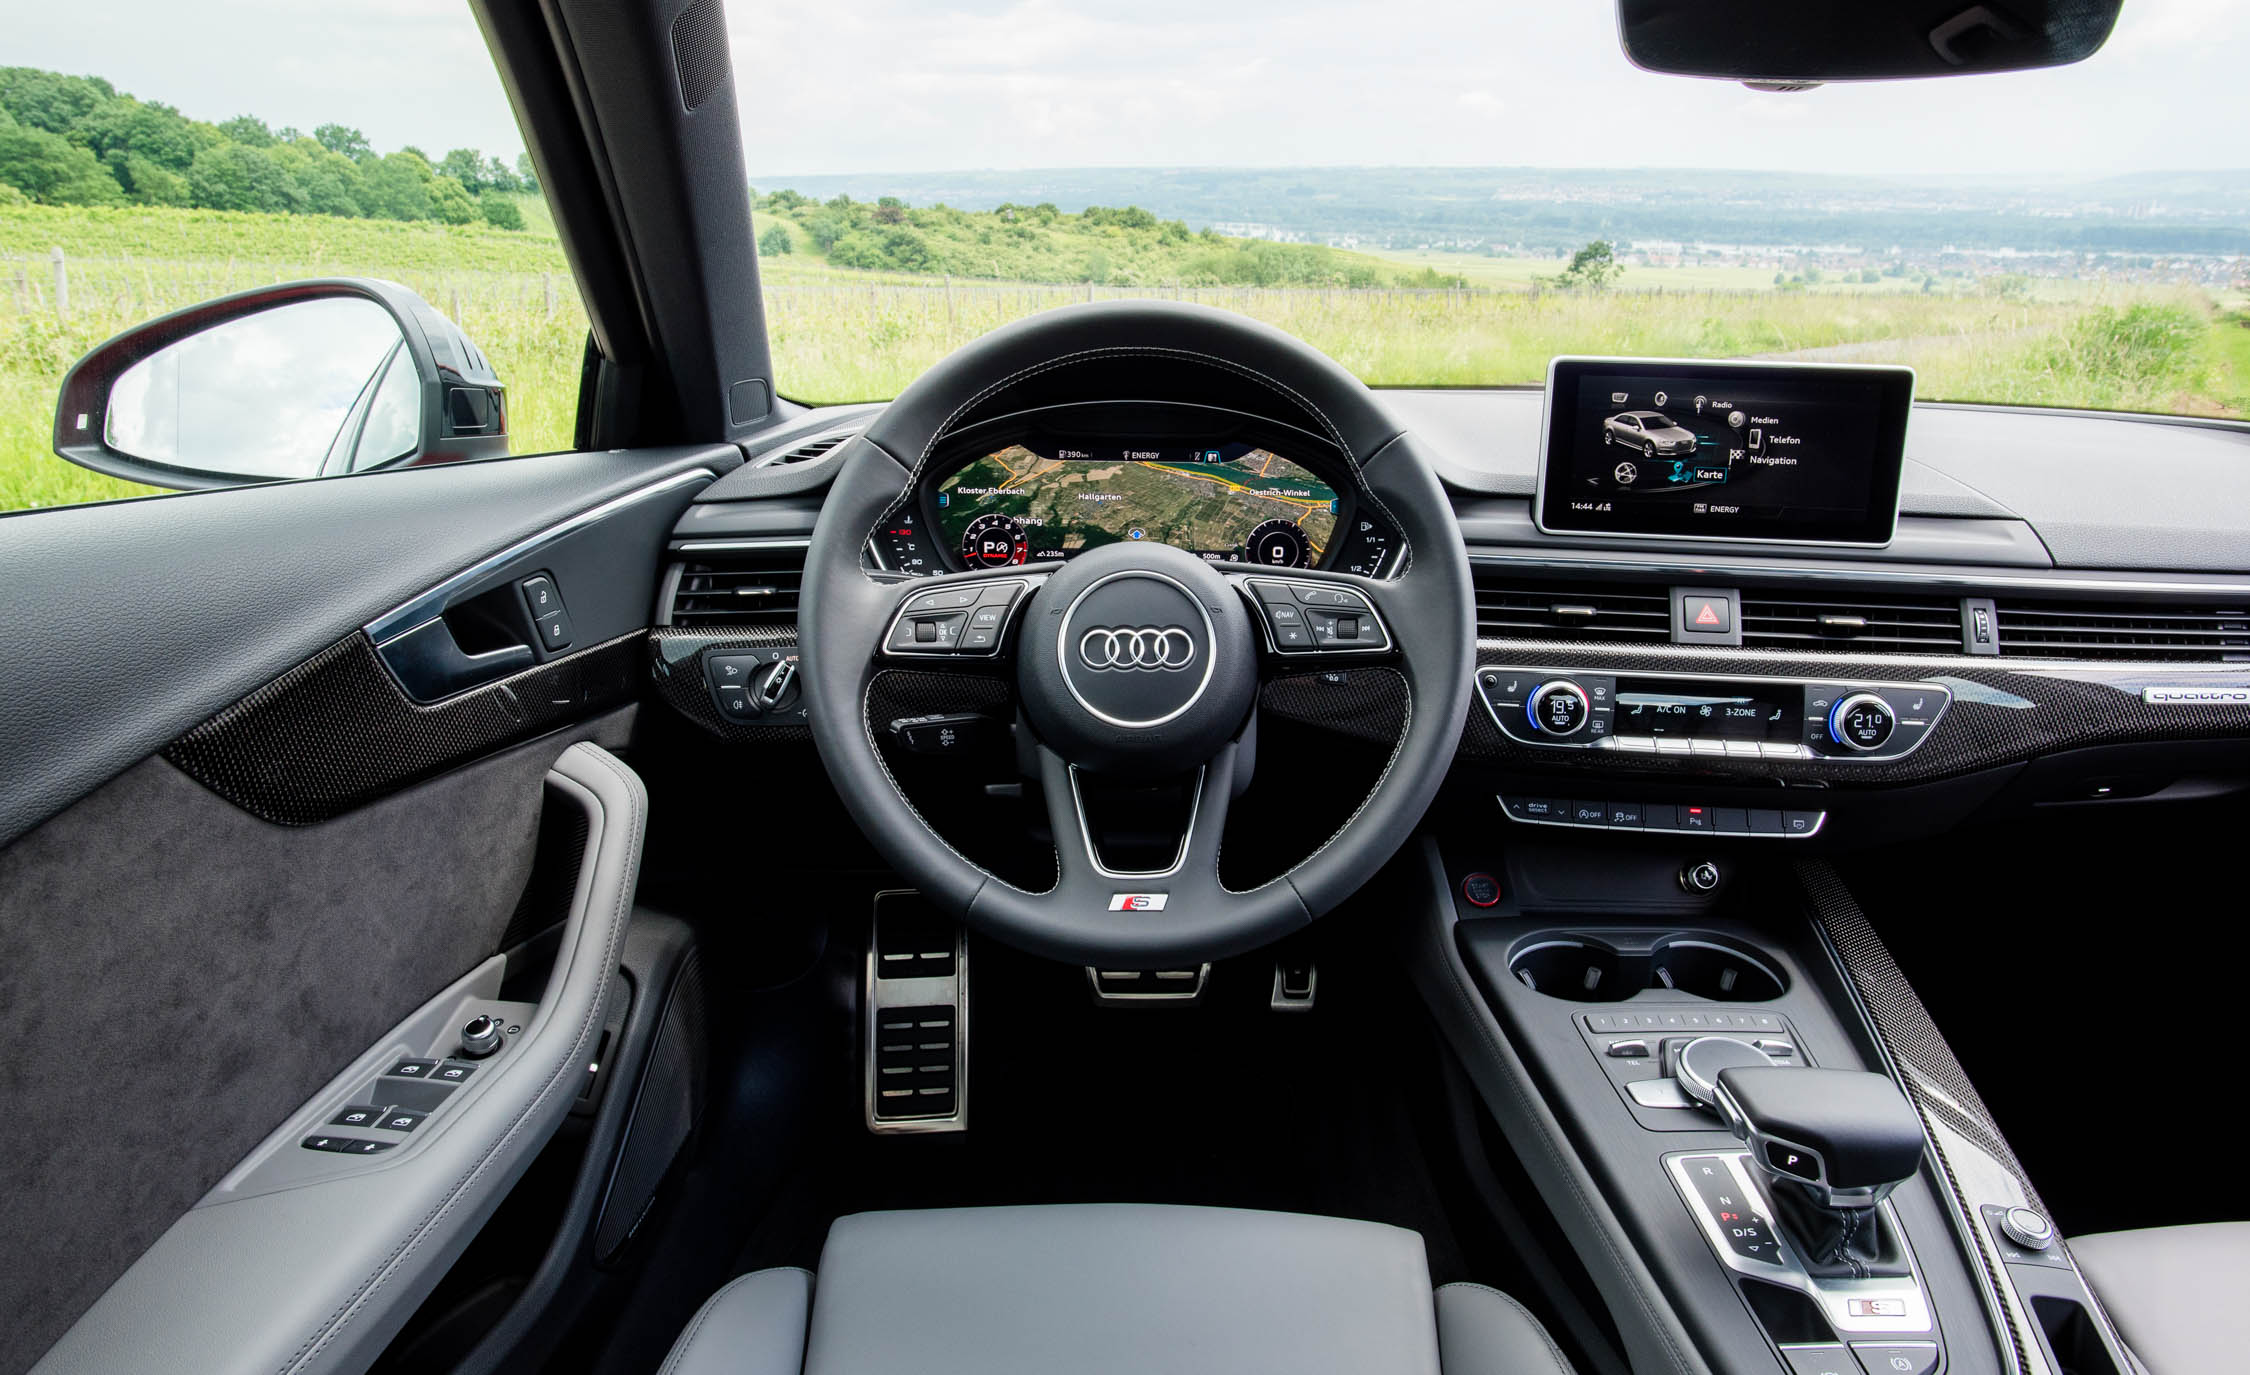 2018 Audi S4 Interior Steering And Speedometer (Photo 7 of 17)